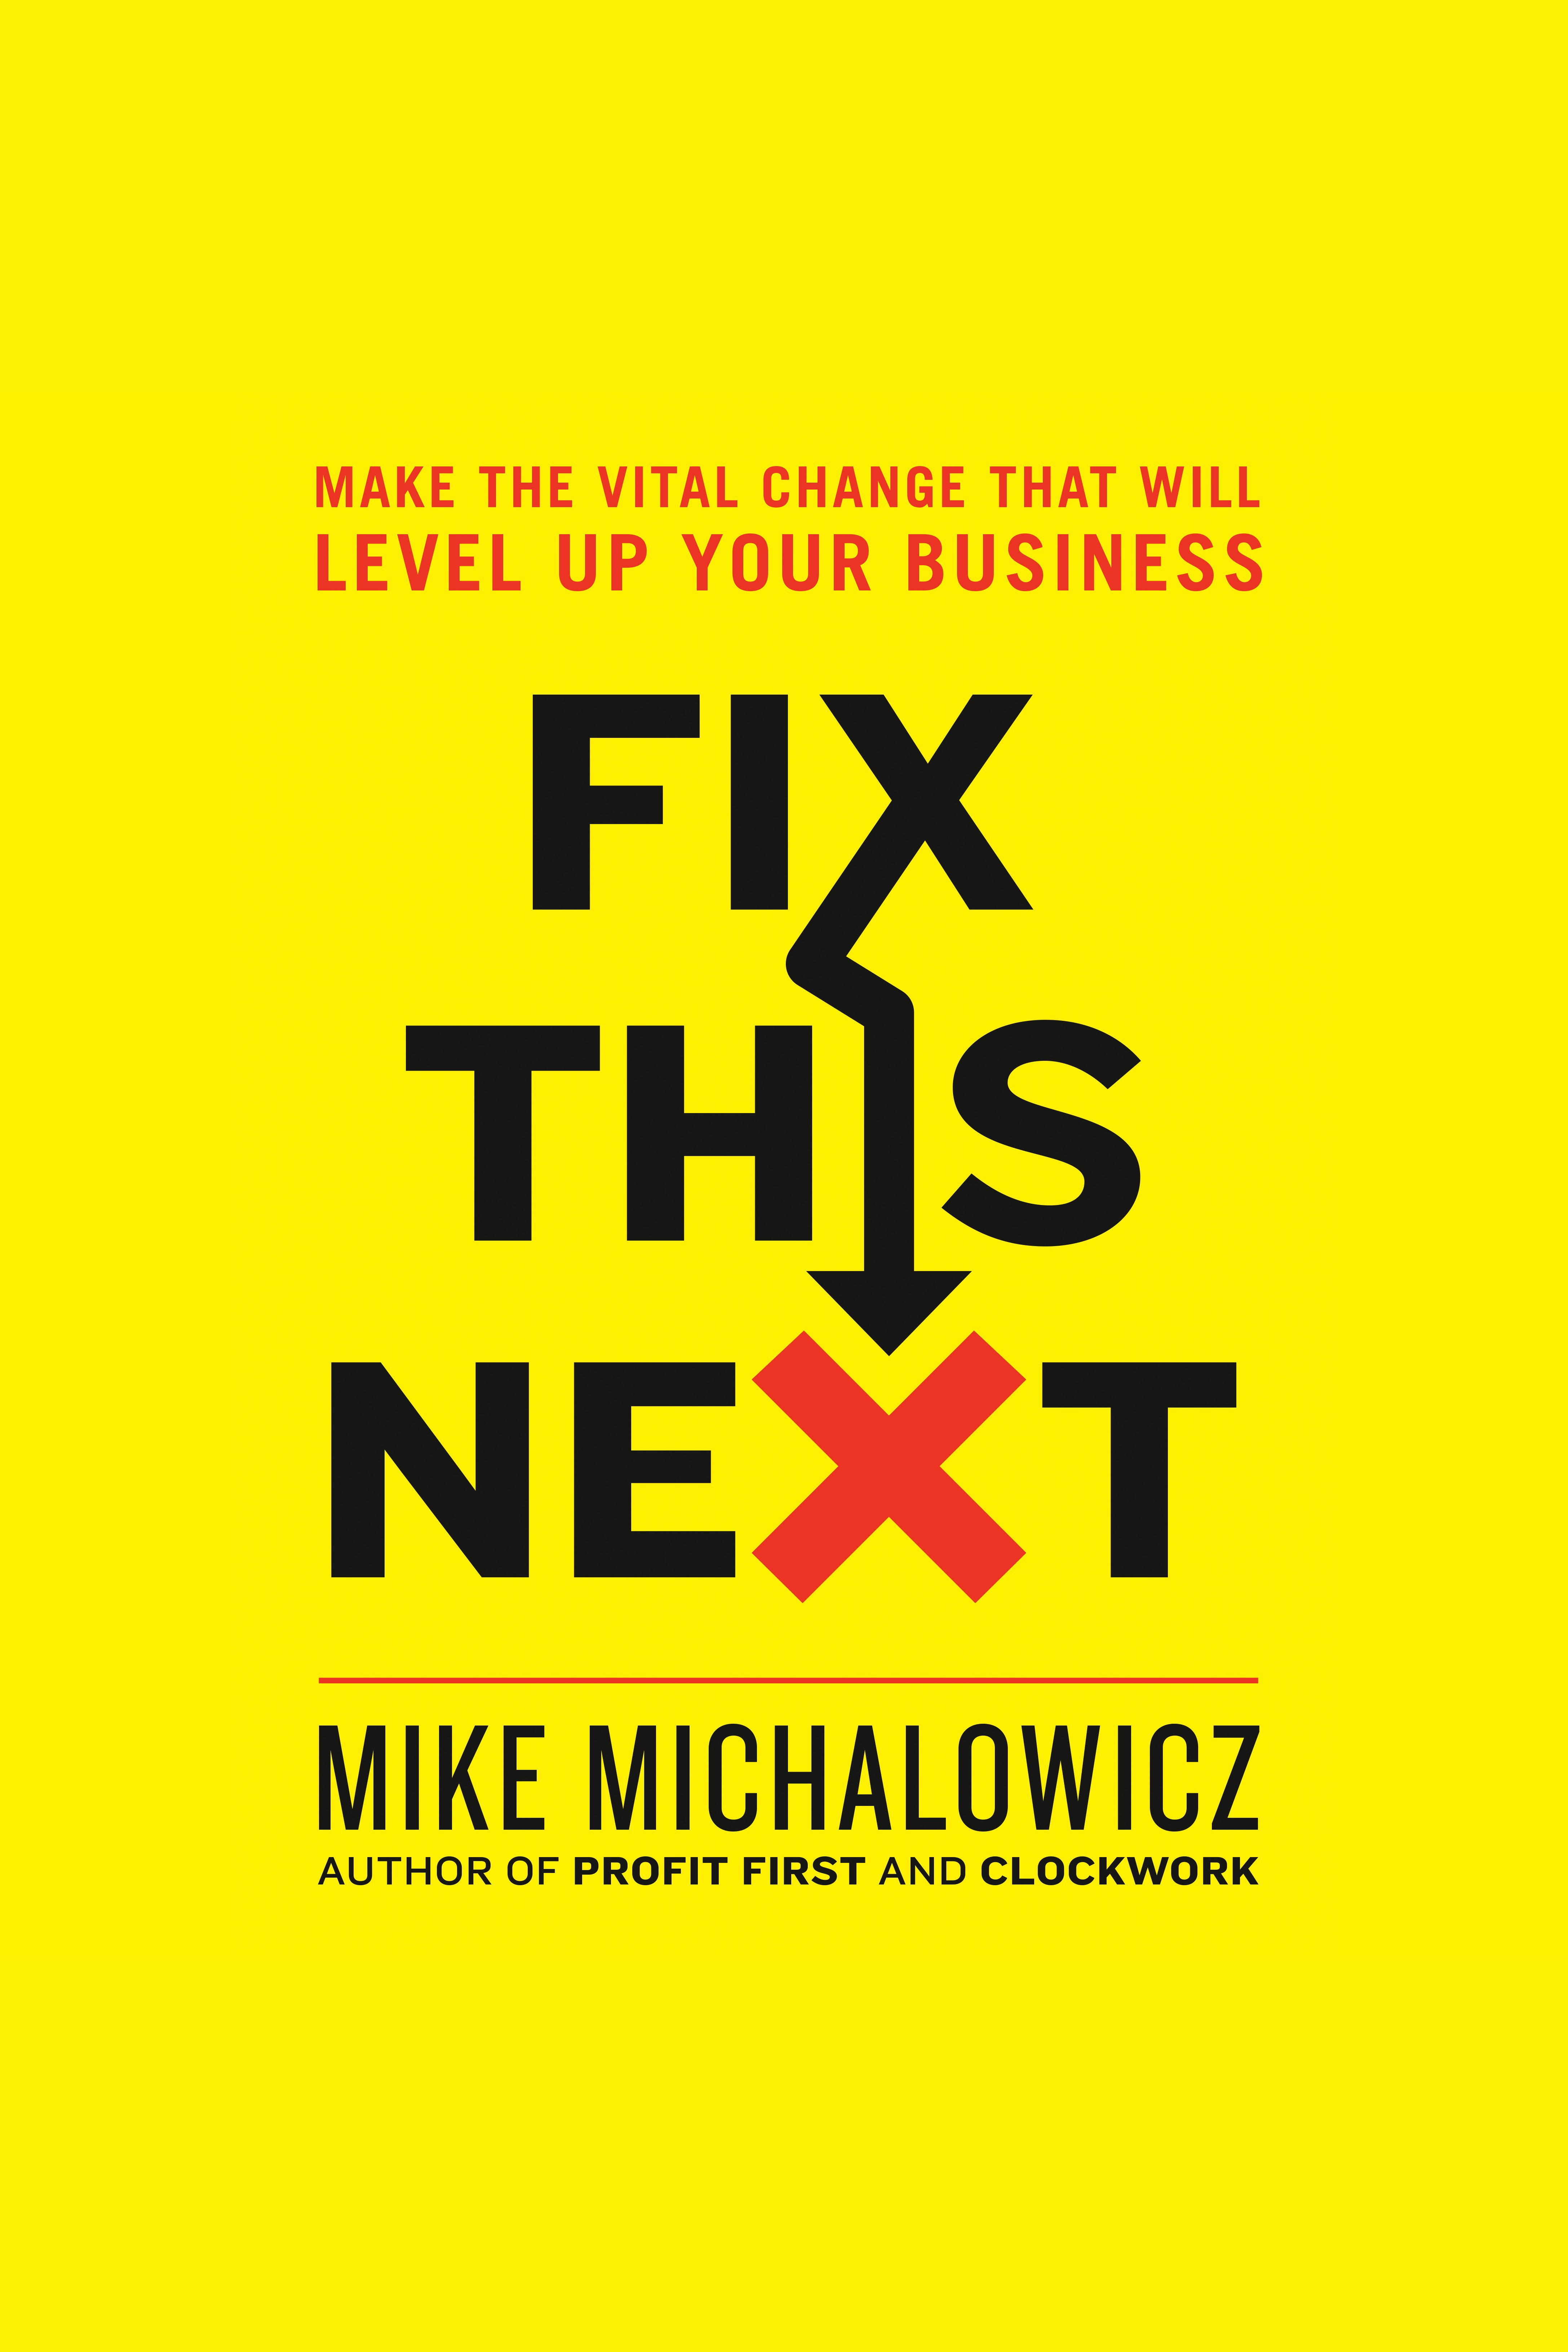 Fix This Next Make the Vital Change That Will Level Up Your Business